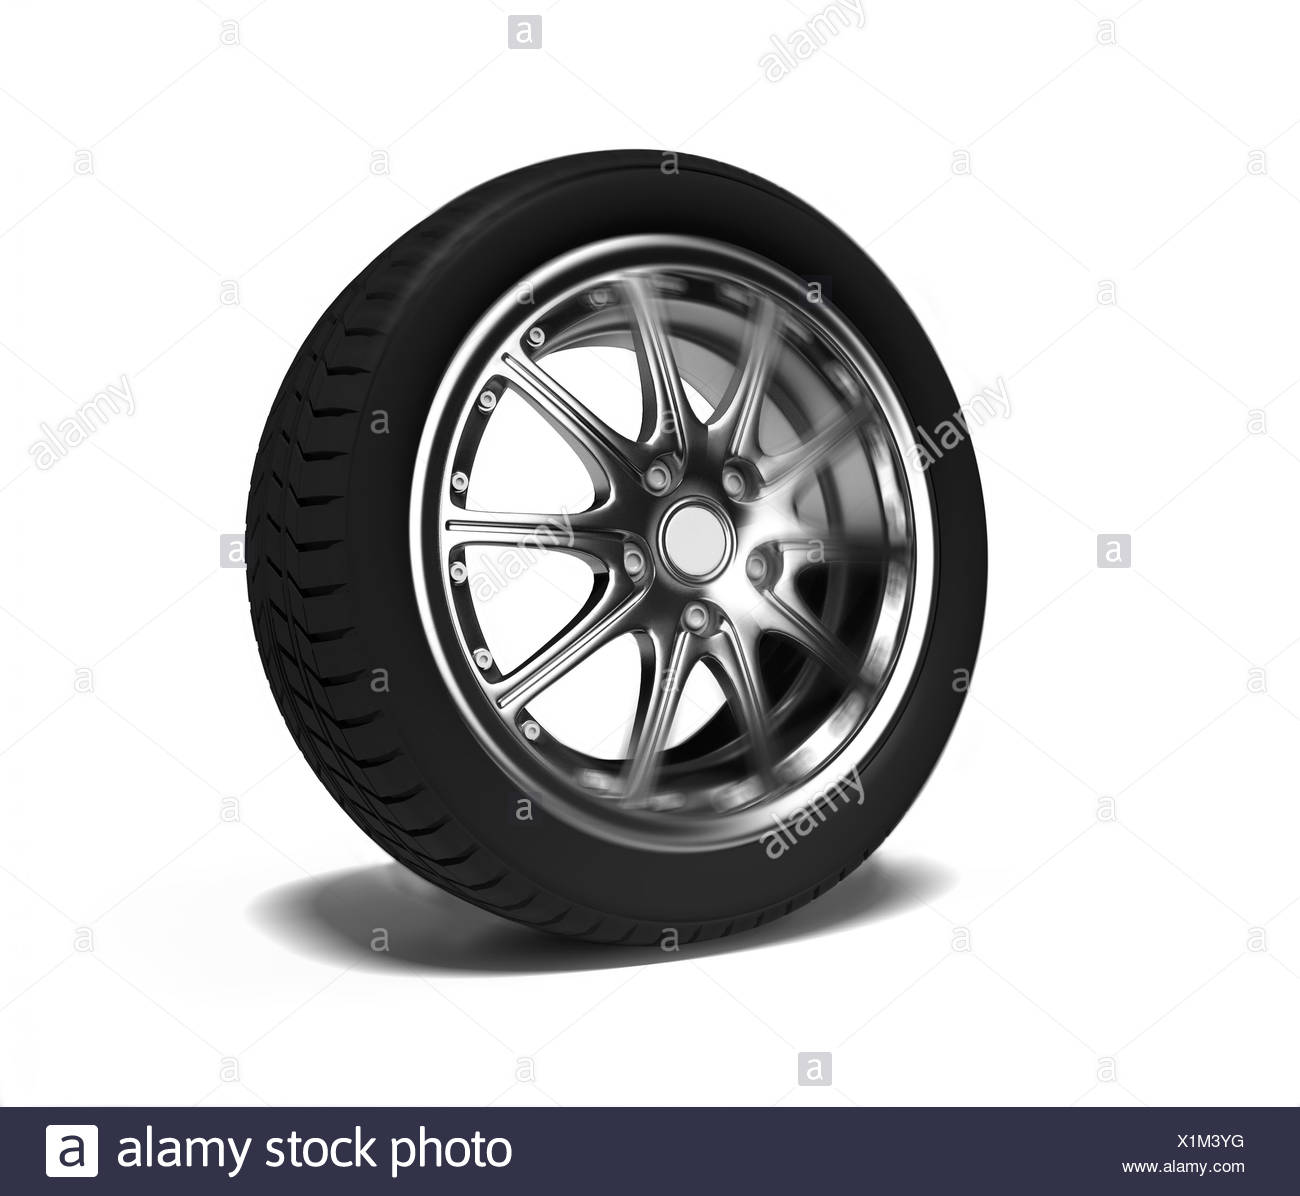 the auto wheel  in motion blur effect (3D) - Stock Image